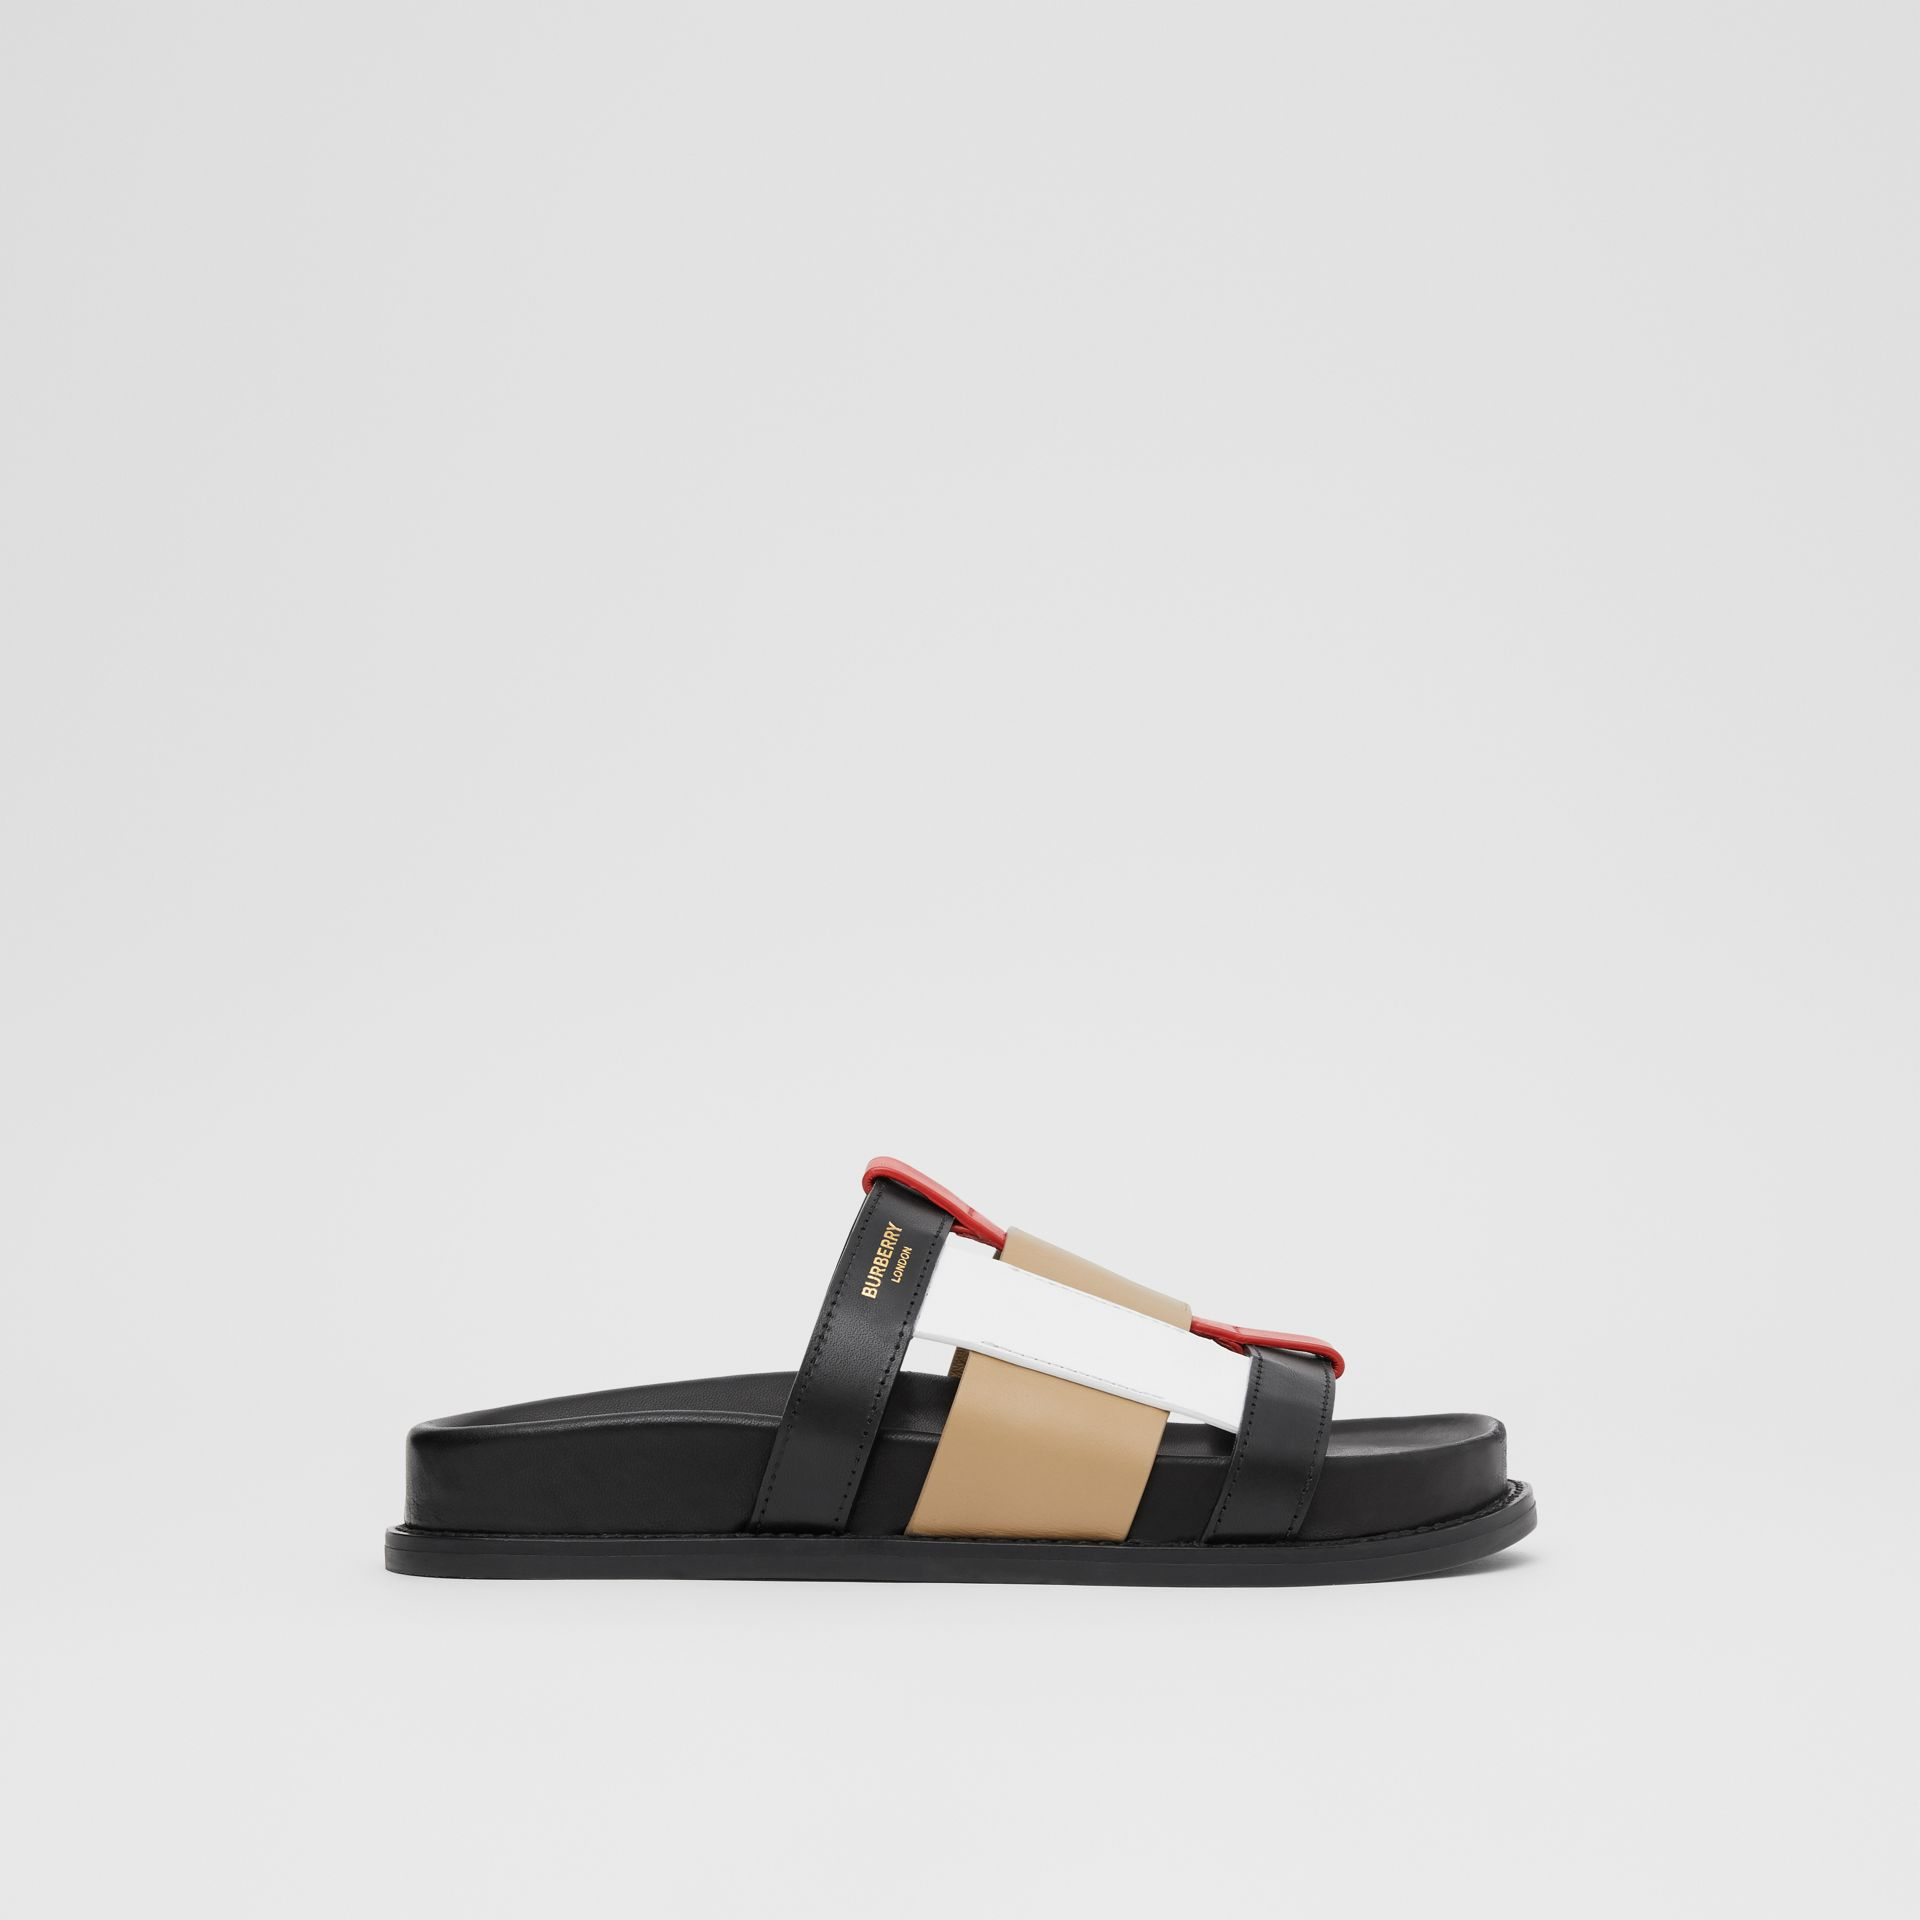 Colour Block Leather Slides in Black/archive Beige - Women | Burberry Hong Kong S.A.R - gallery image 5